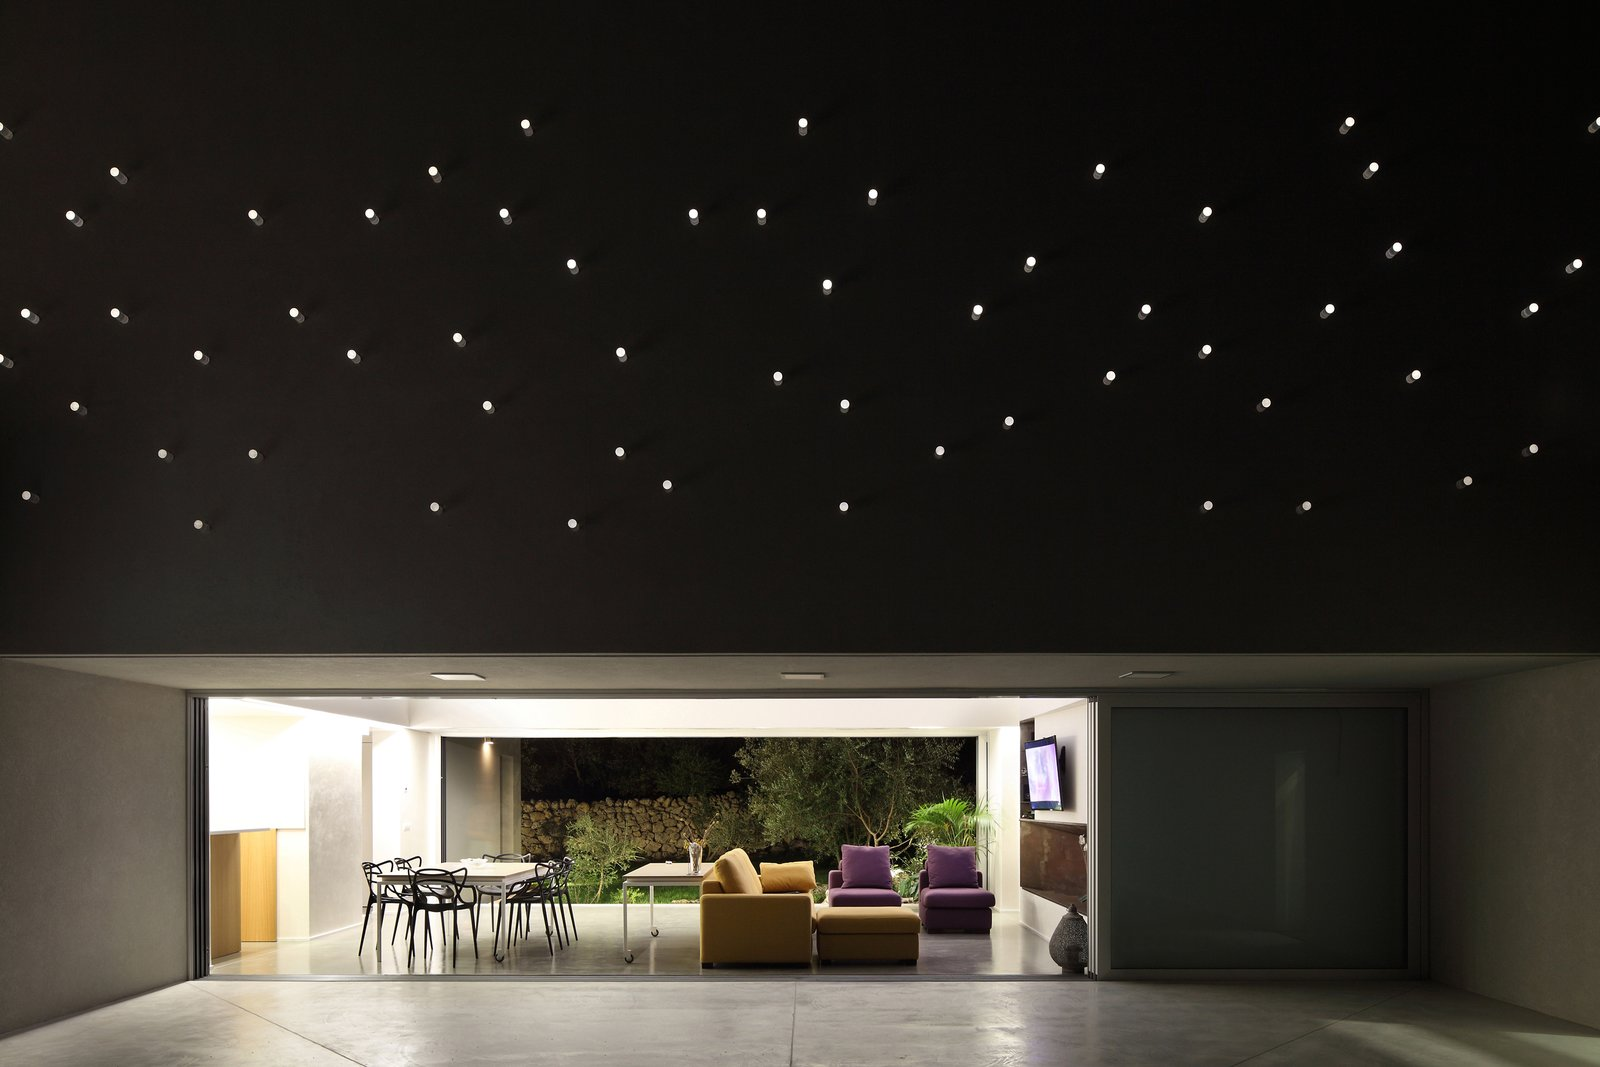 A Home That Dramatically Replicates a Starry Sky in Its Living Room